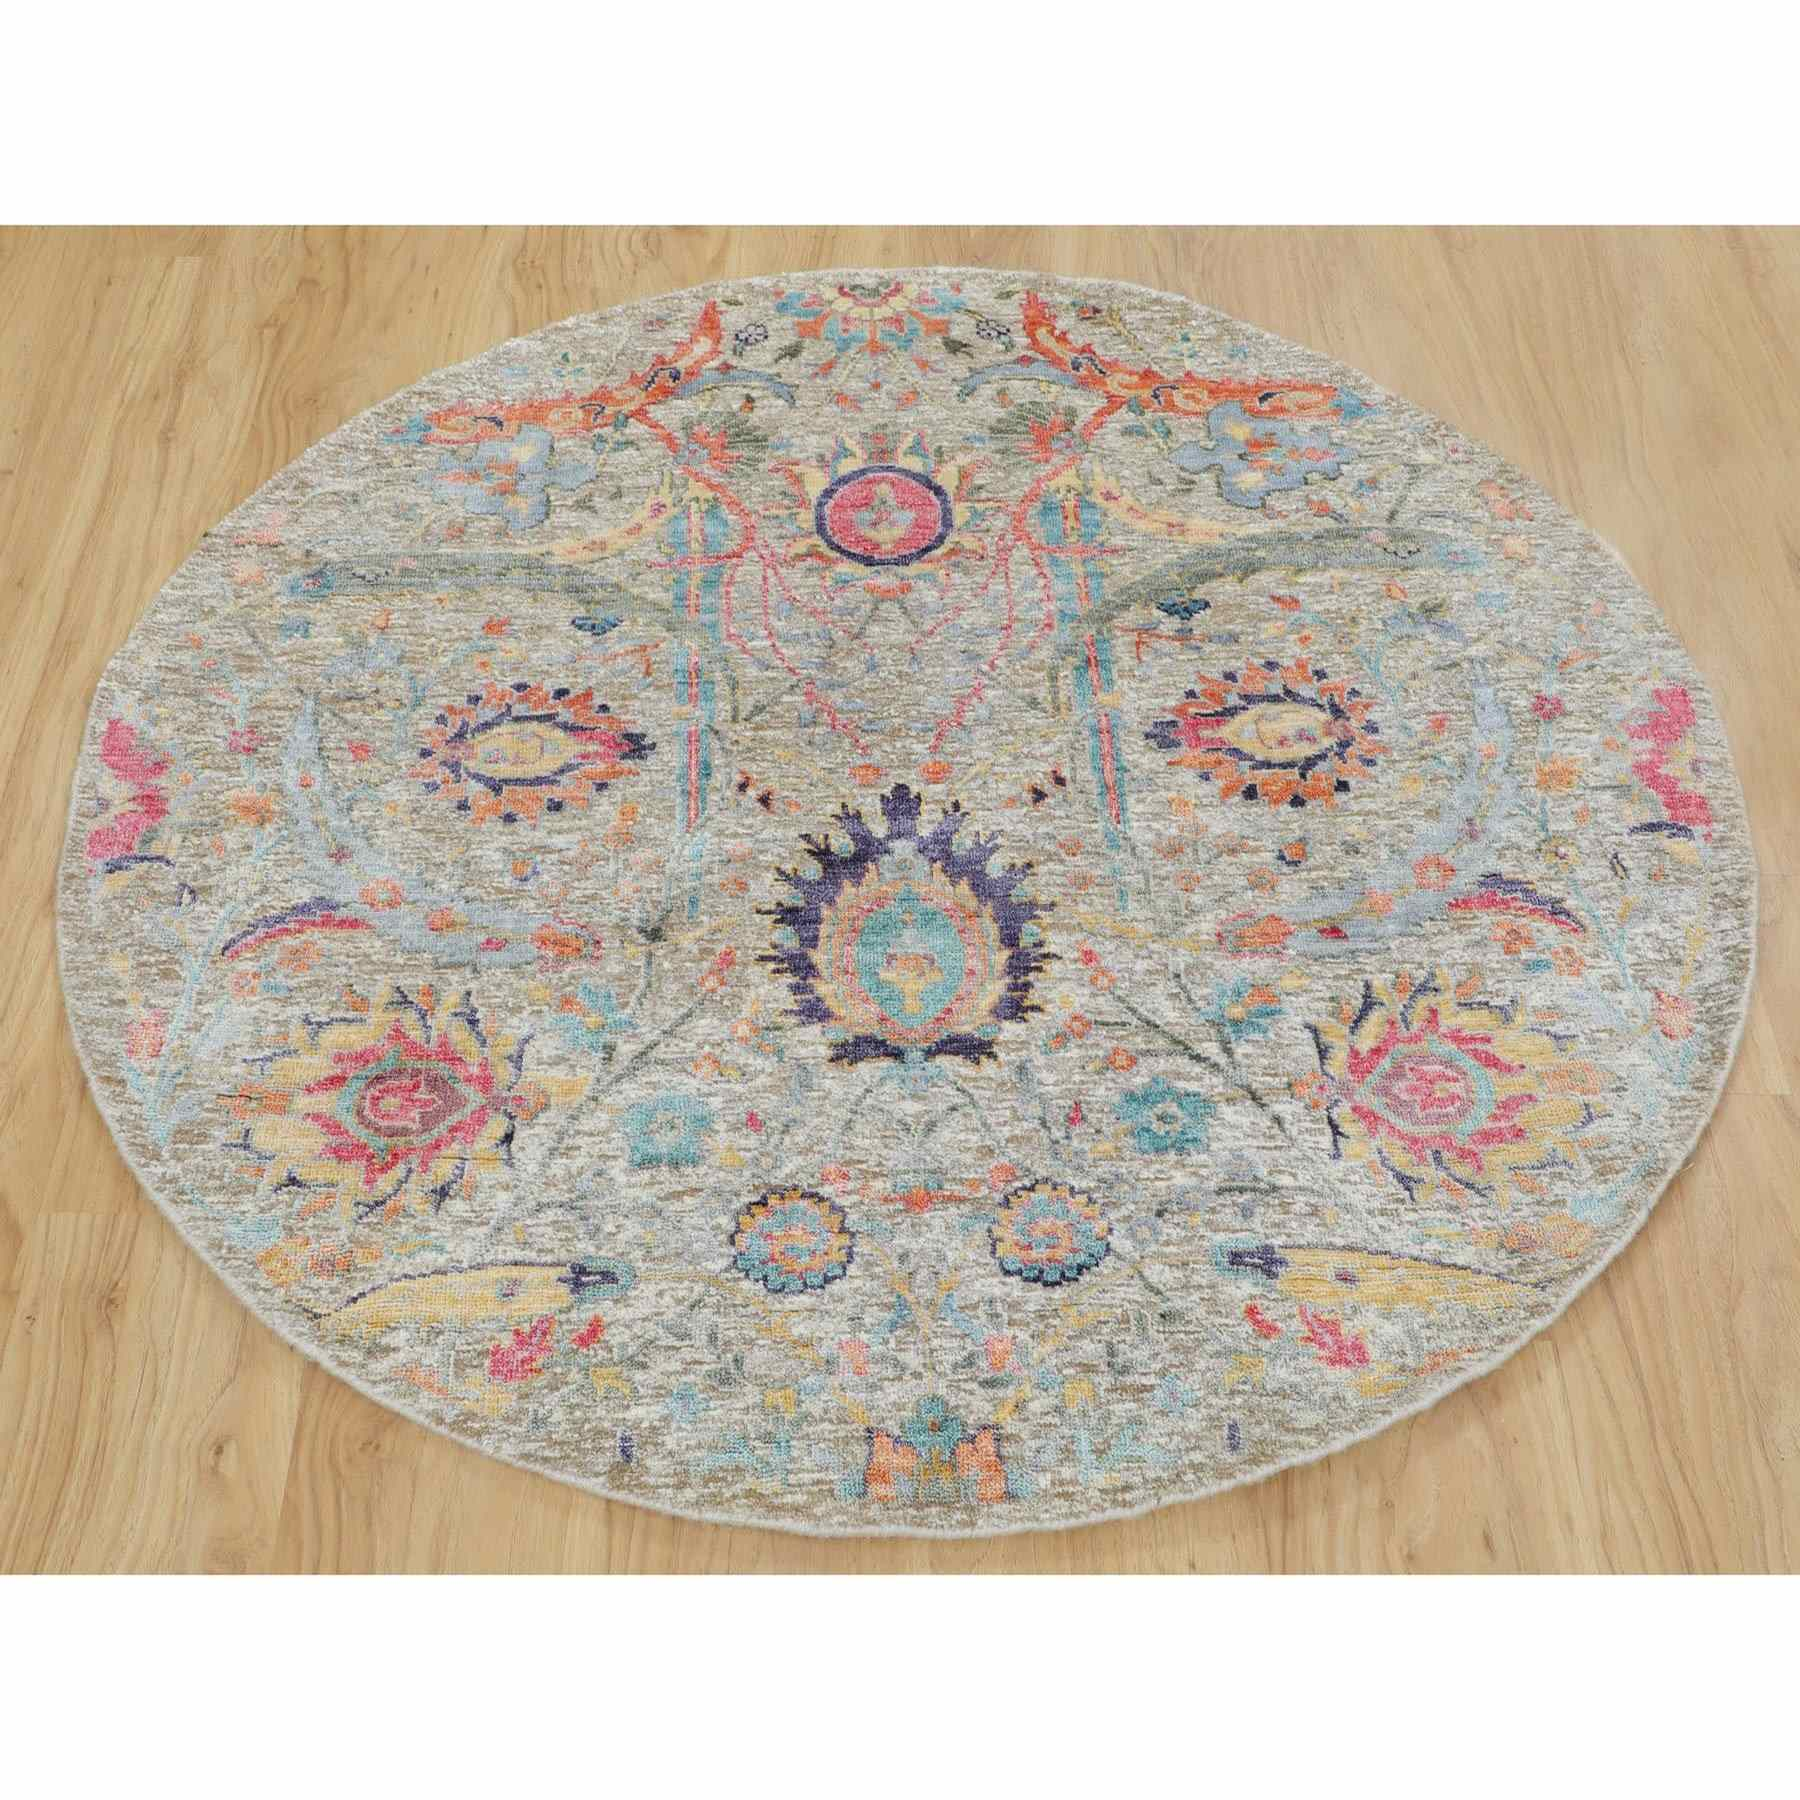 Transitional-Hand-Knotted-Rug-290900